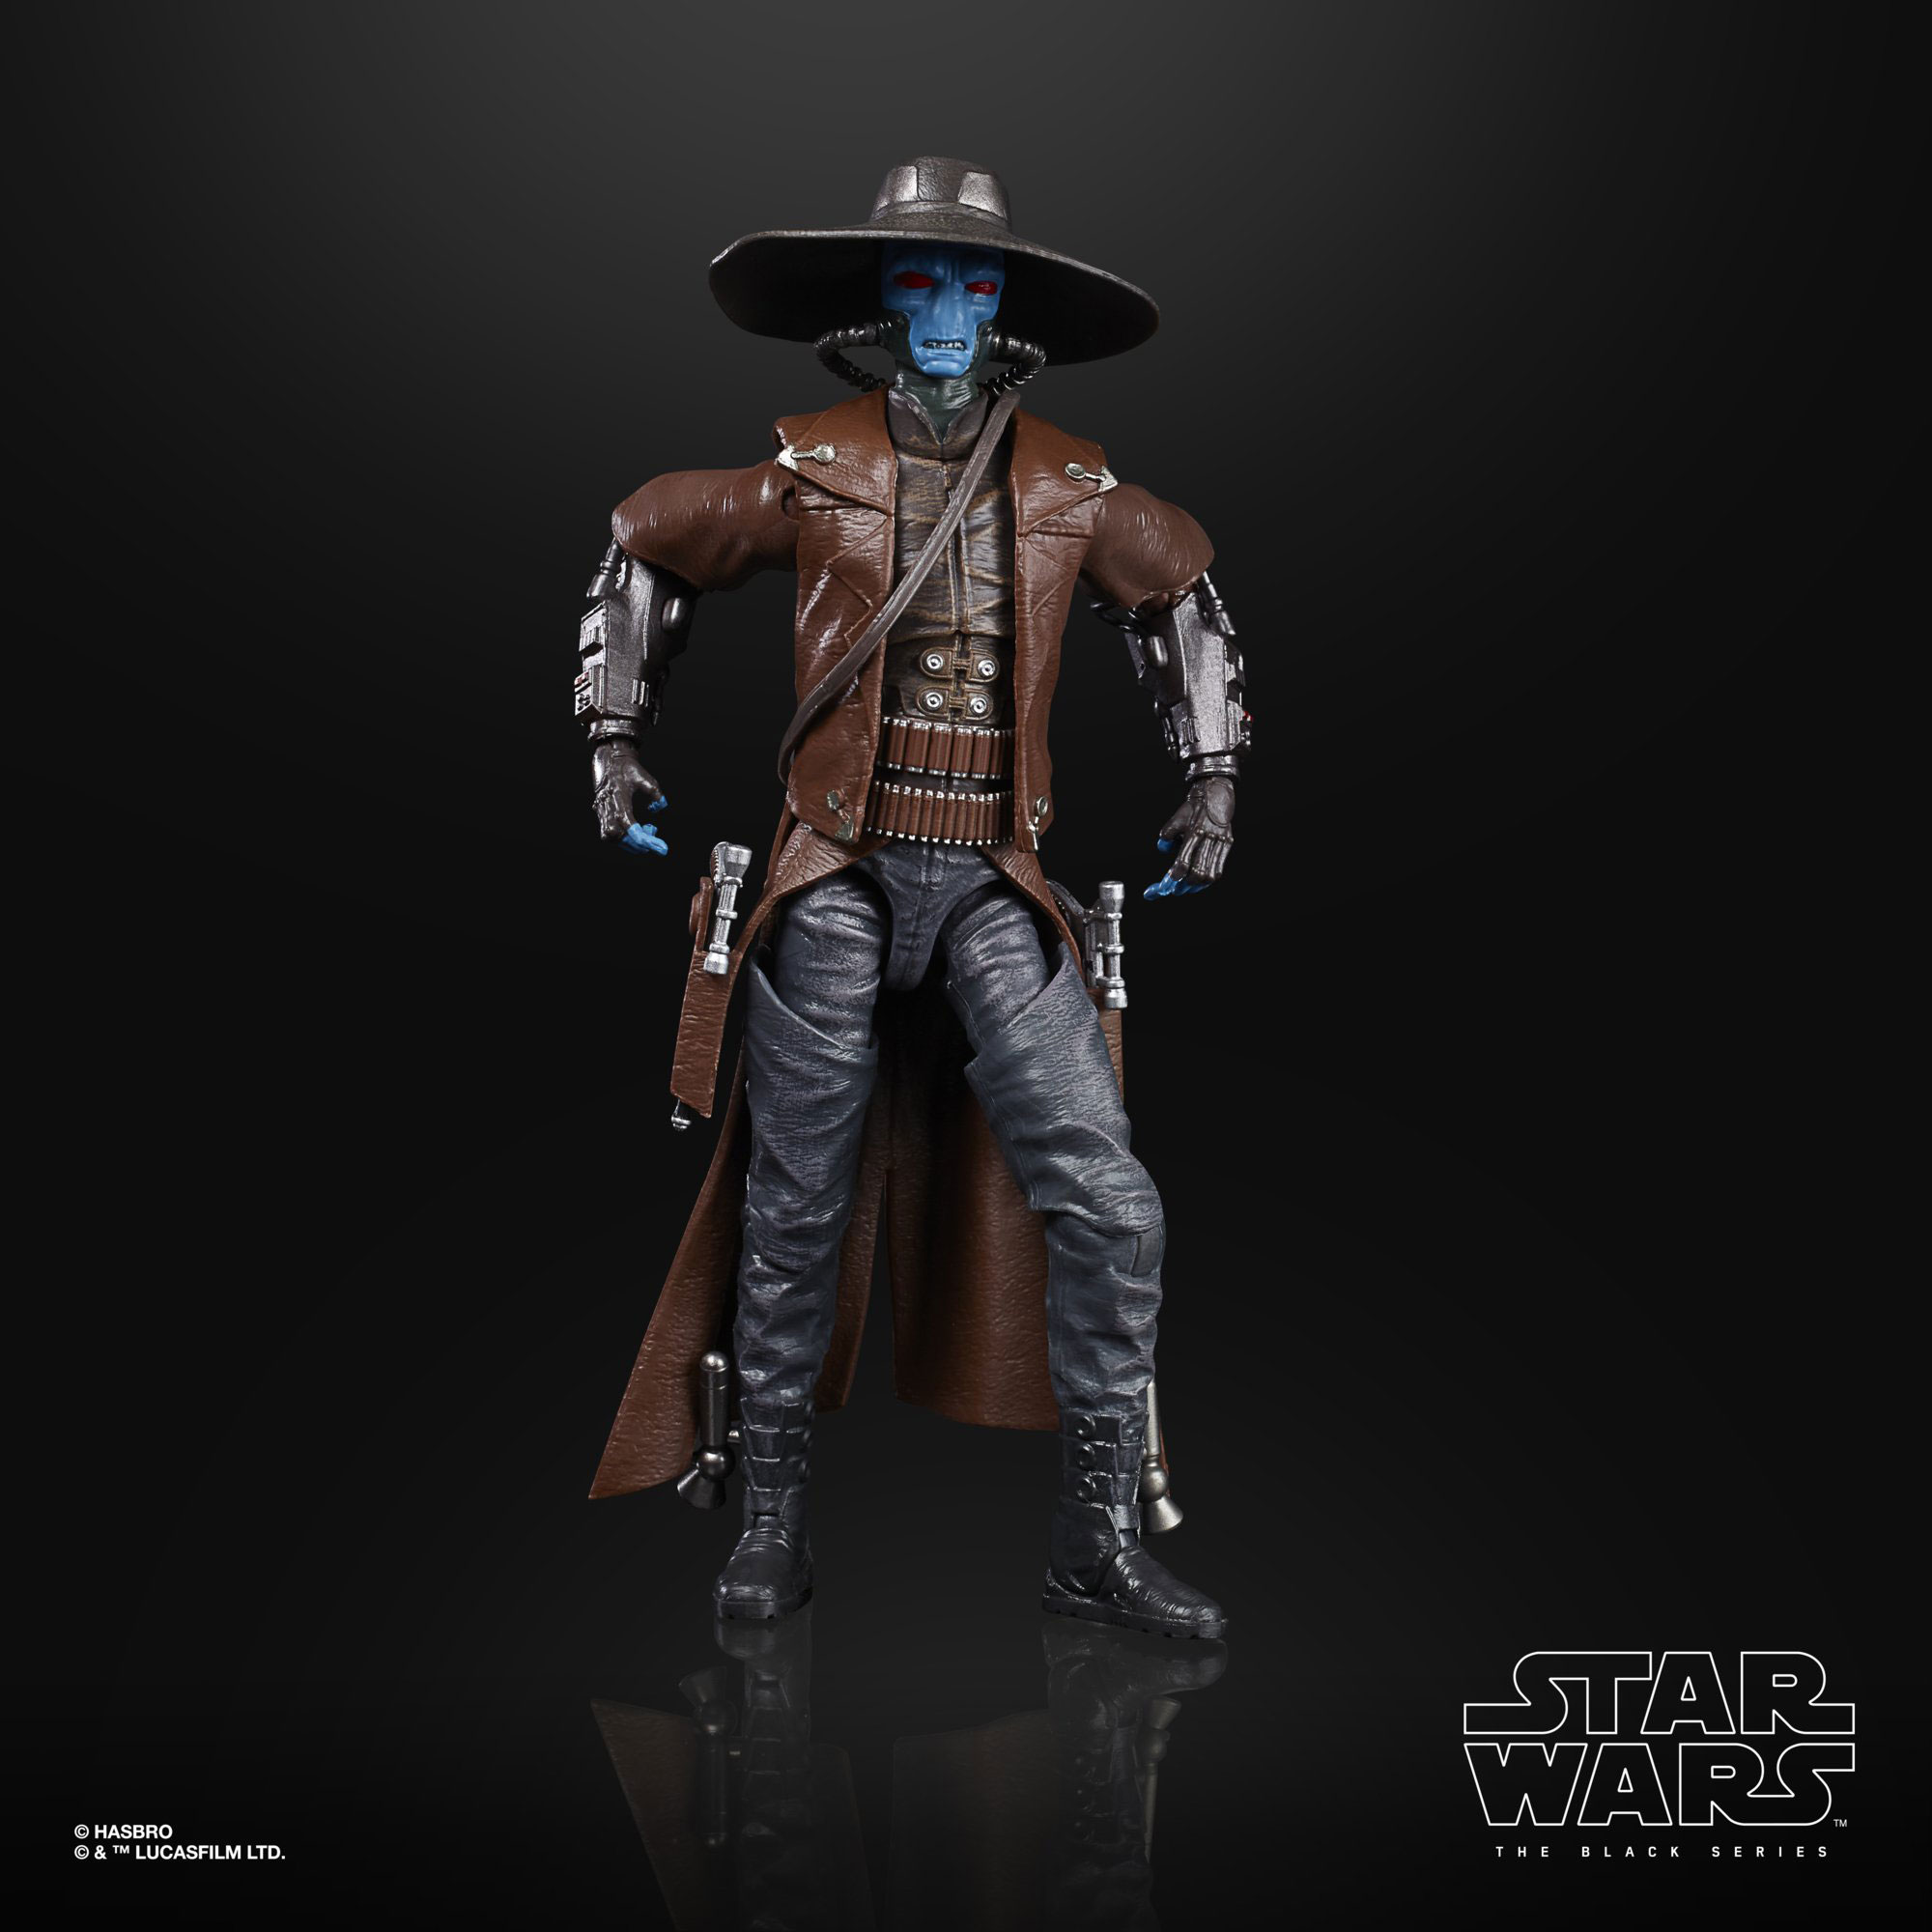 star-wars-black-series-cad-bane-action-figure-3